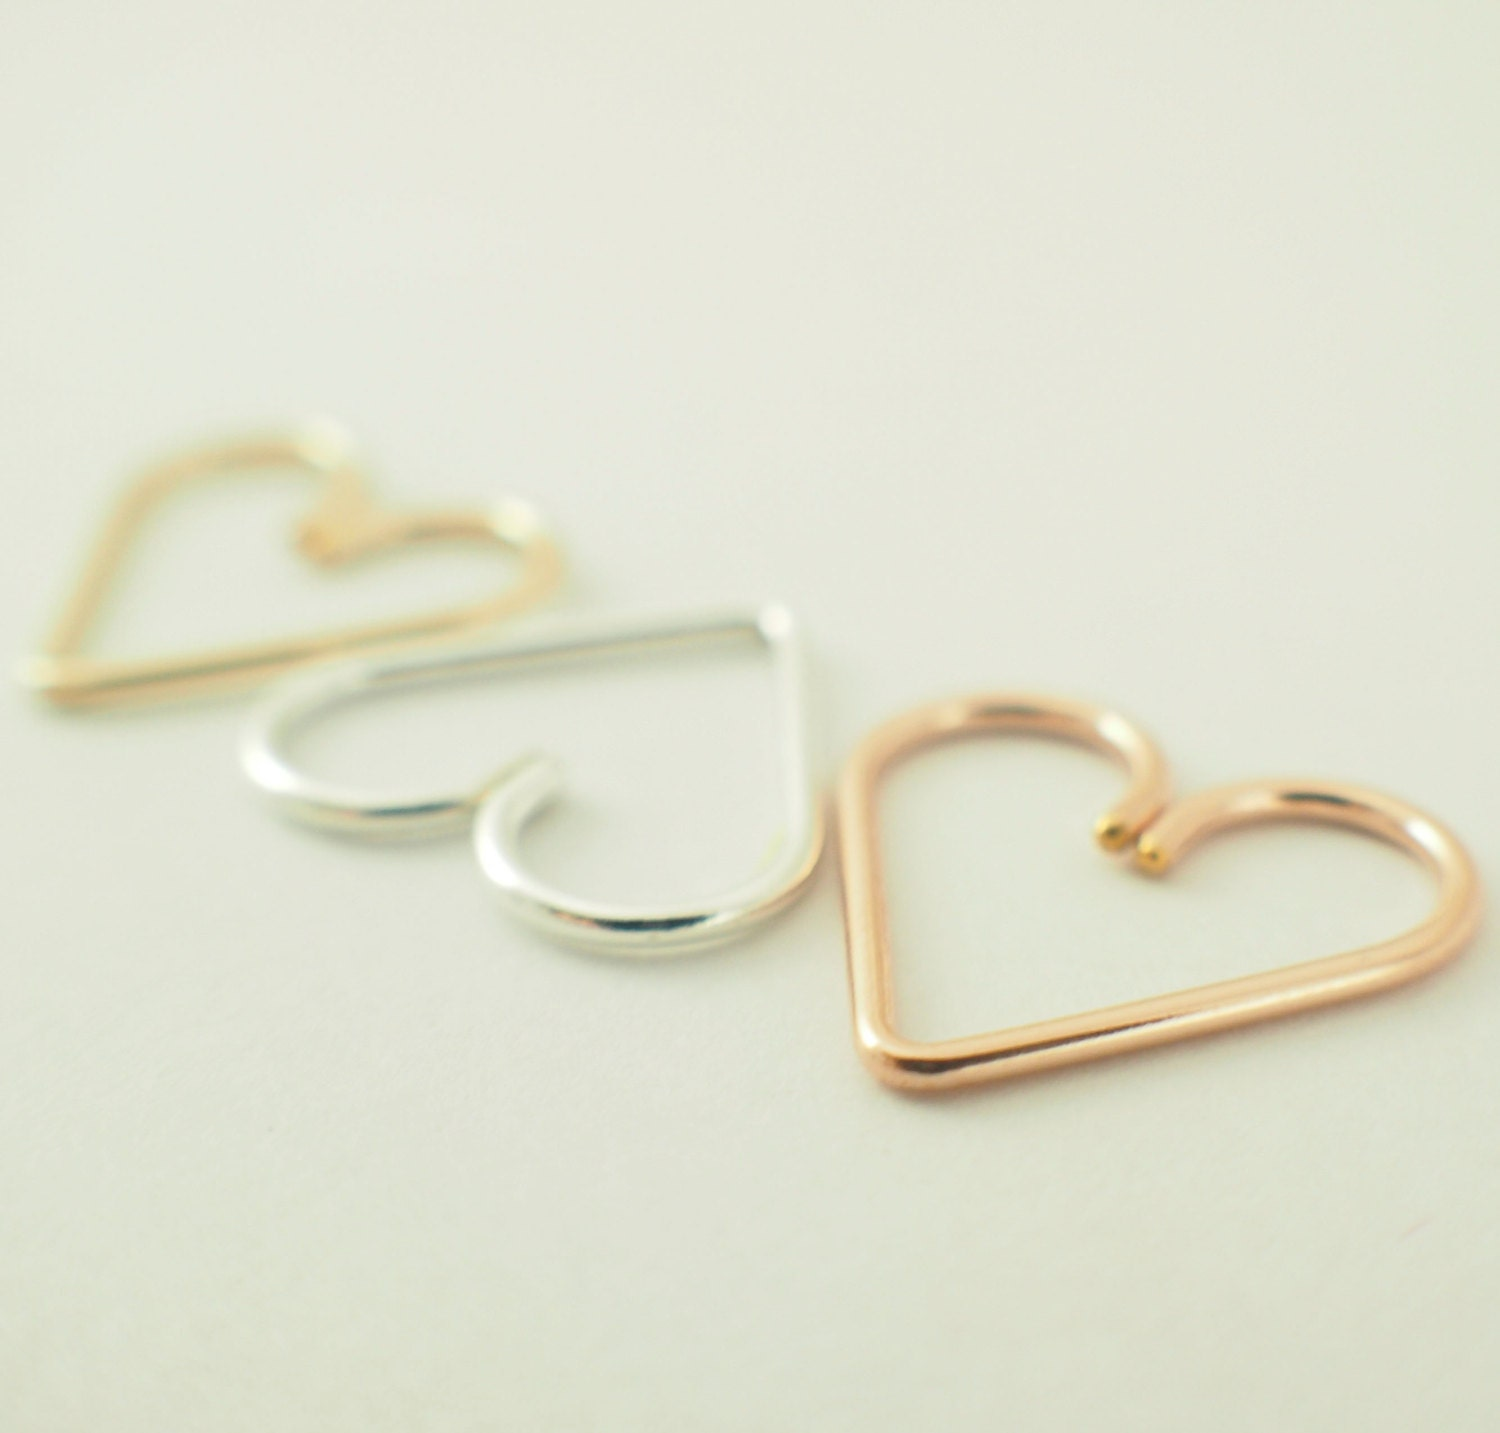 Argentium Silver, Rose Gold Filled, or Yellow Gold Filled - Heart Piercing - Hypo Allergenic - Cartilage Piercing - YOU PICK Metal and Gauge - favmoongirl